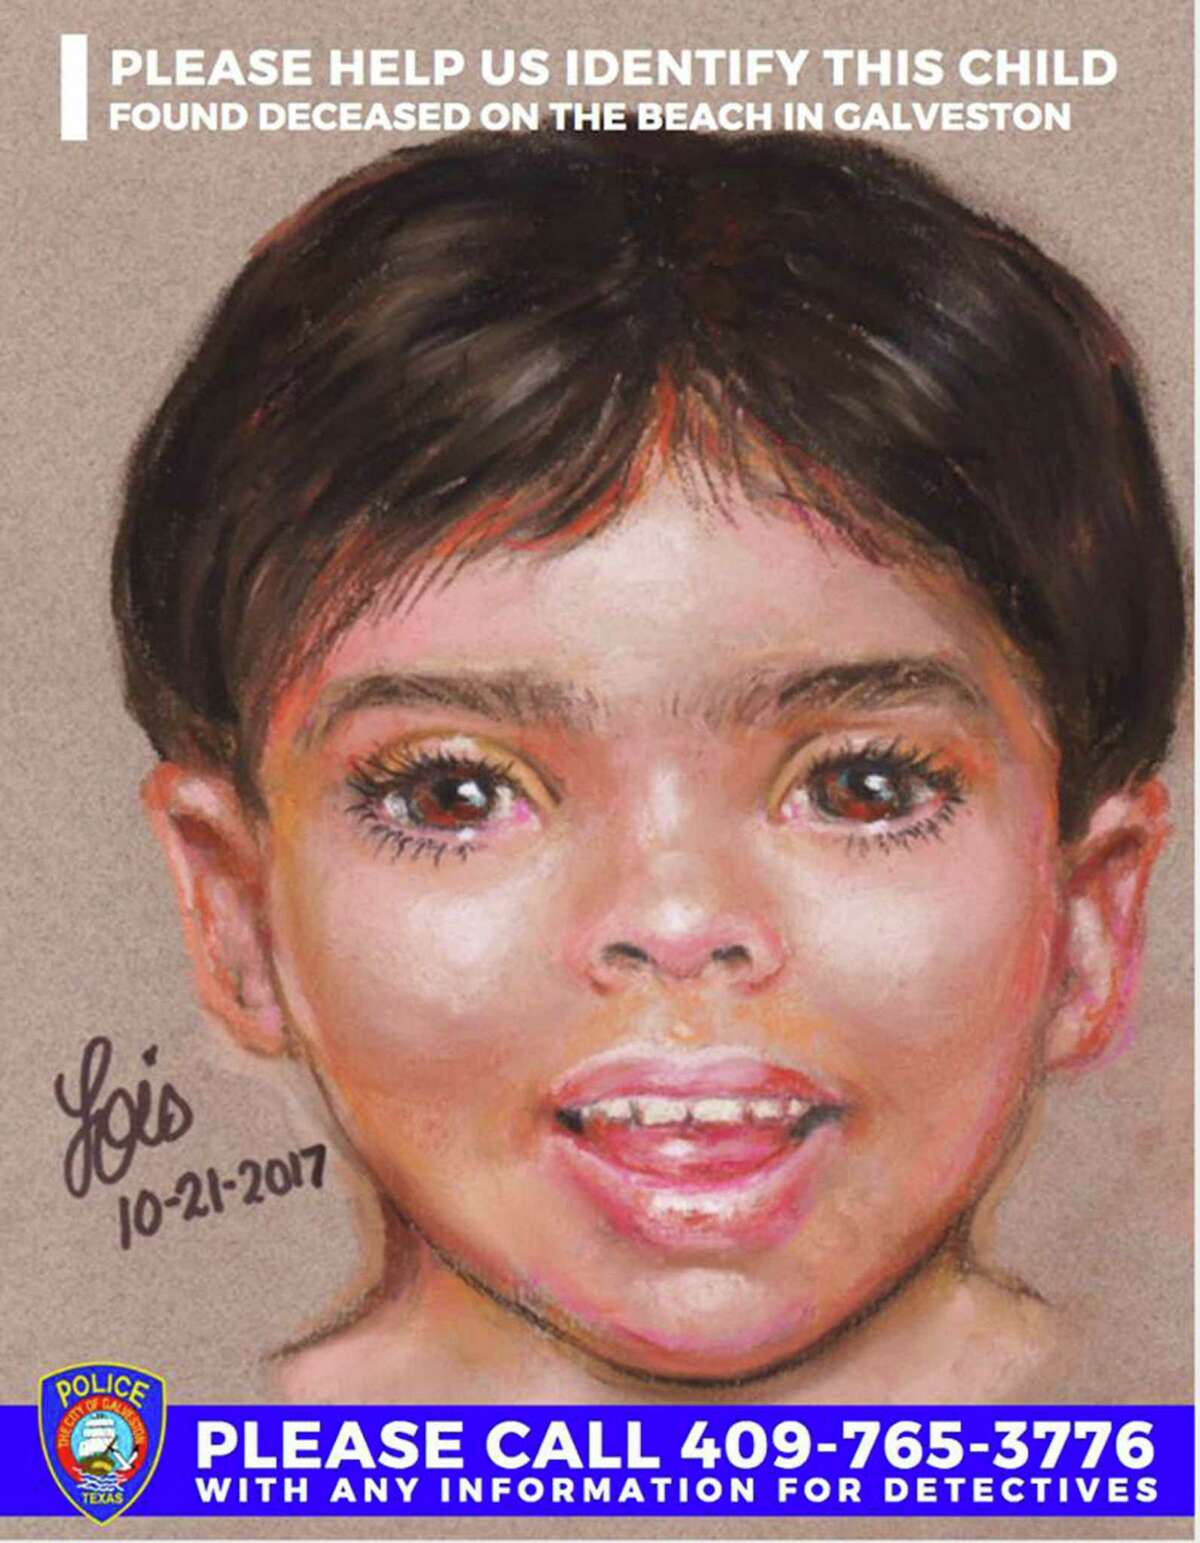 """New details are expected Tuesday in the death of """"Little Jacob,"""" the unidentified child whose body was found washed up on a Galveston beach in October.Investigators with the FBI and Galveston Police Department said they will provide autopsy results and new photos of the child, who was first spotted by a beach-goer along the water in the 700 block of Seawall on Oct. 20."""